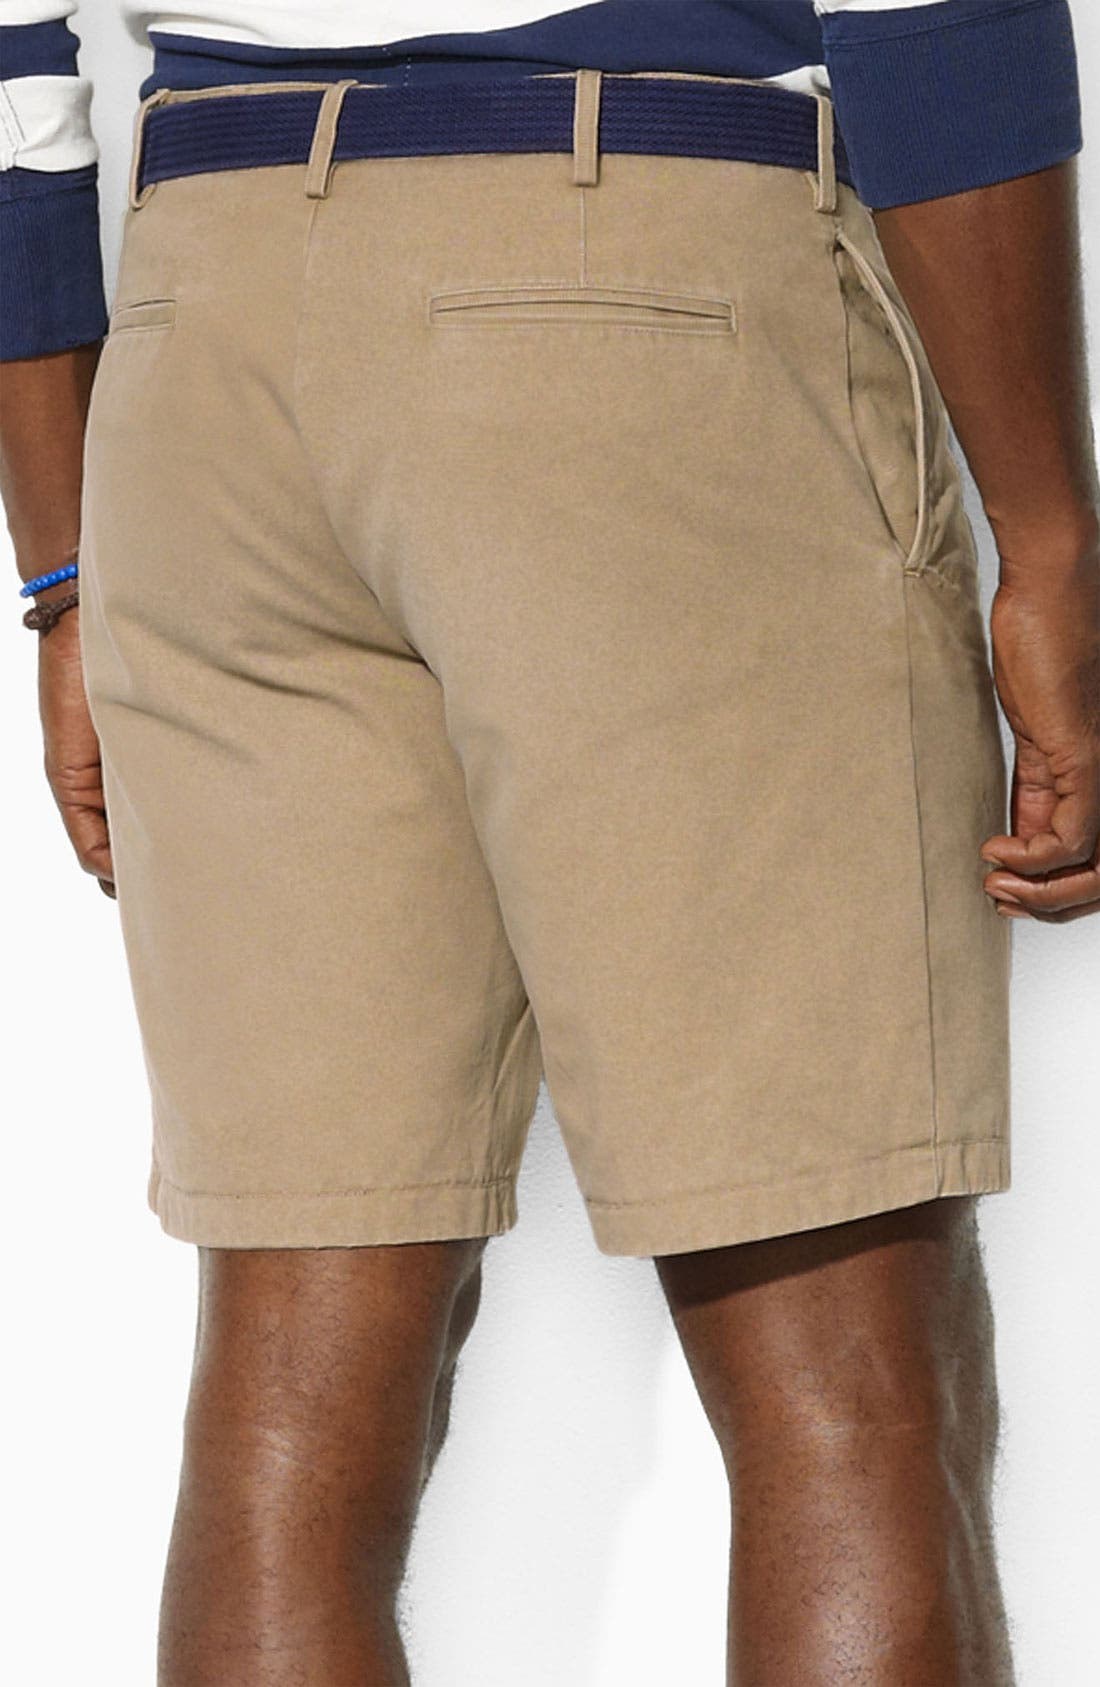 Alternate Image 3  - Polo Ralph Lauren 'Country Club' Reversible Shorts